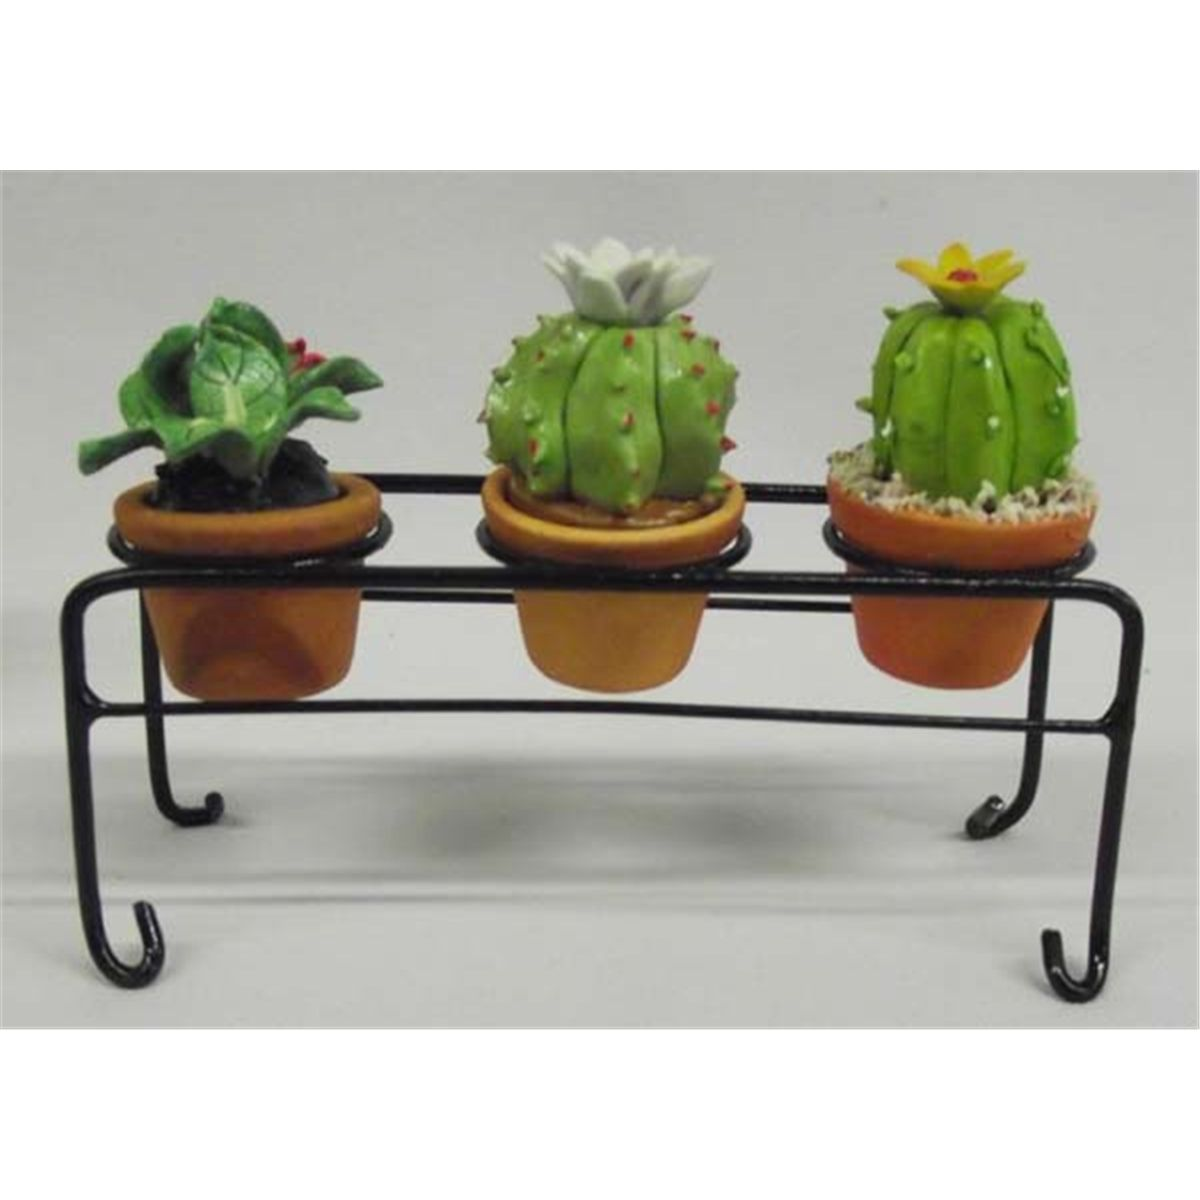 Miniature decorative clay flower pots with plants for Small clay flower pots